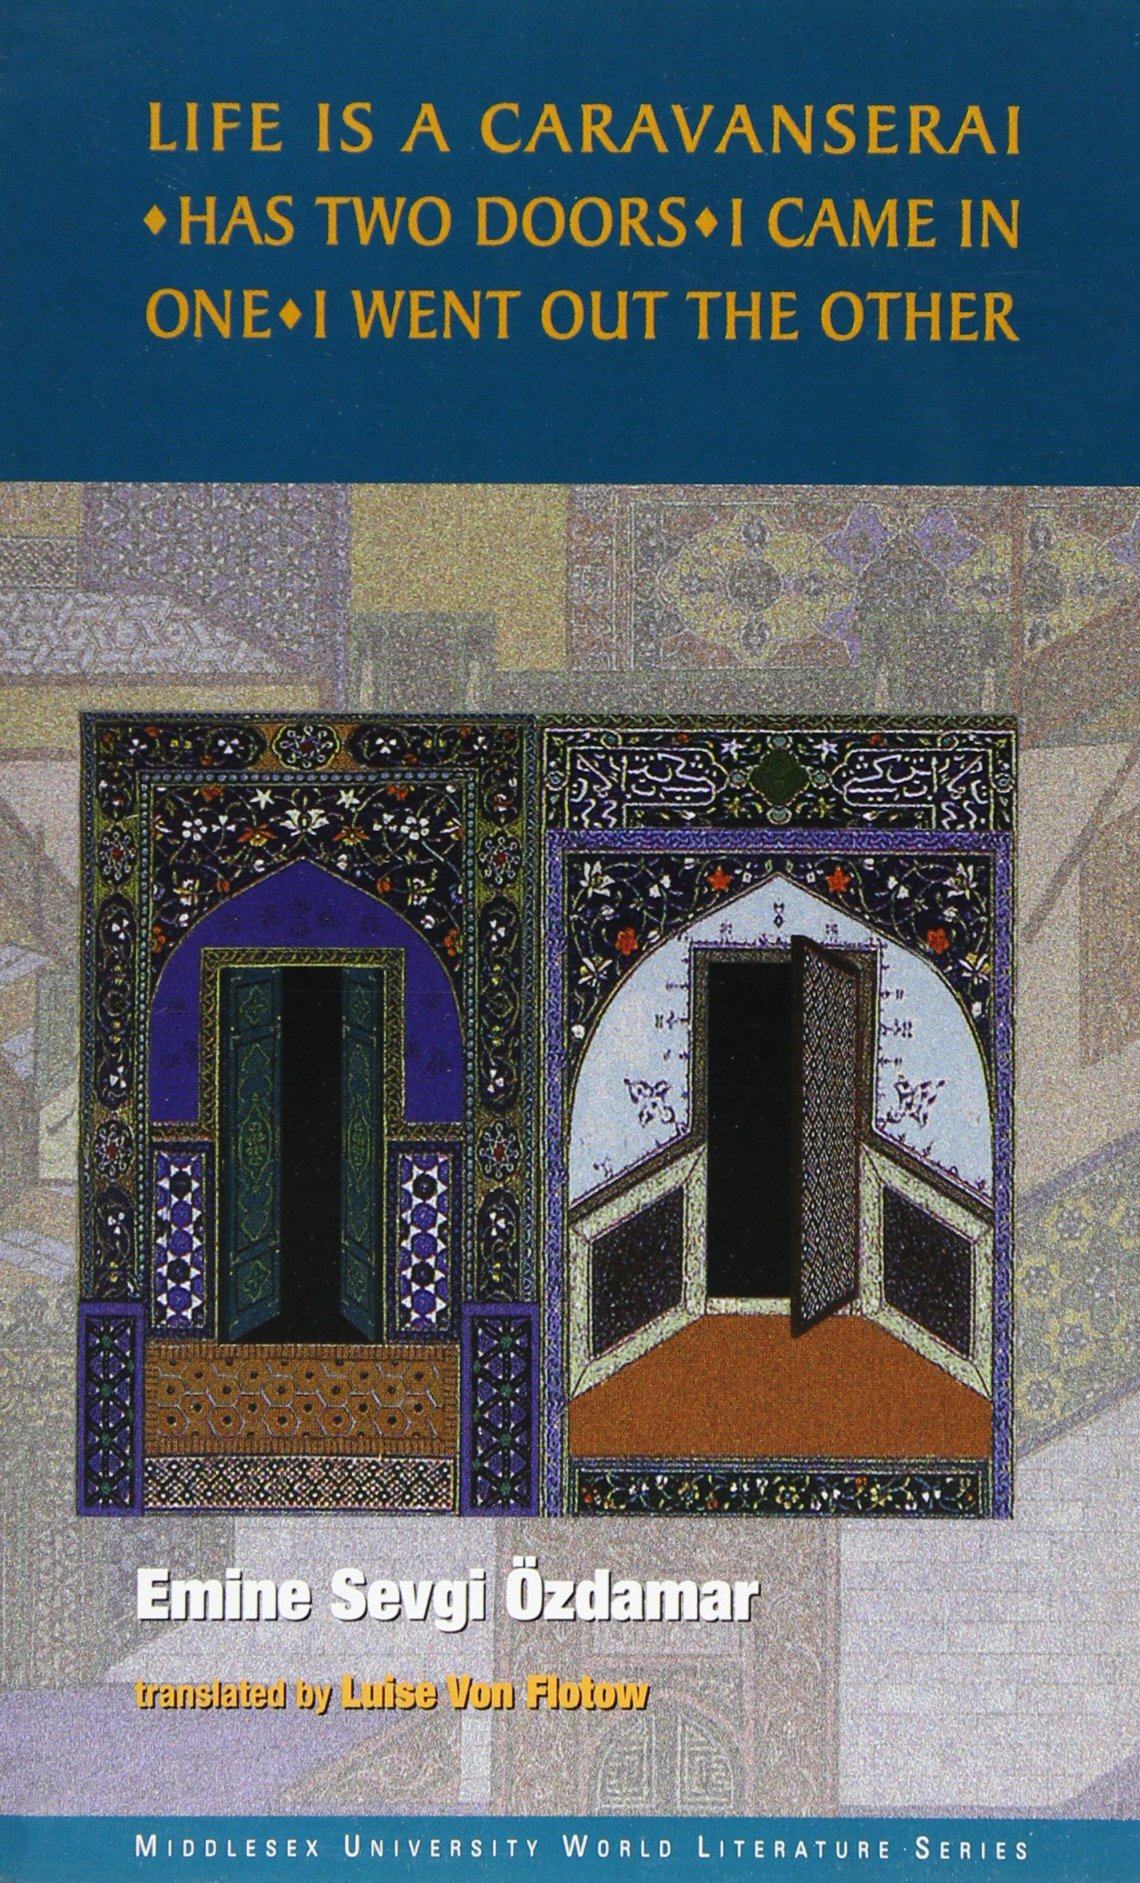 Read Online Life Is a Caravanserai, Has Two Doors, I Came in One, I Went Out the Other (Middlesex University World Literature Series) ebook